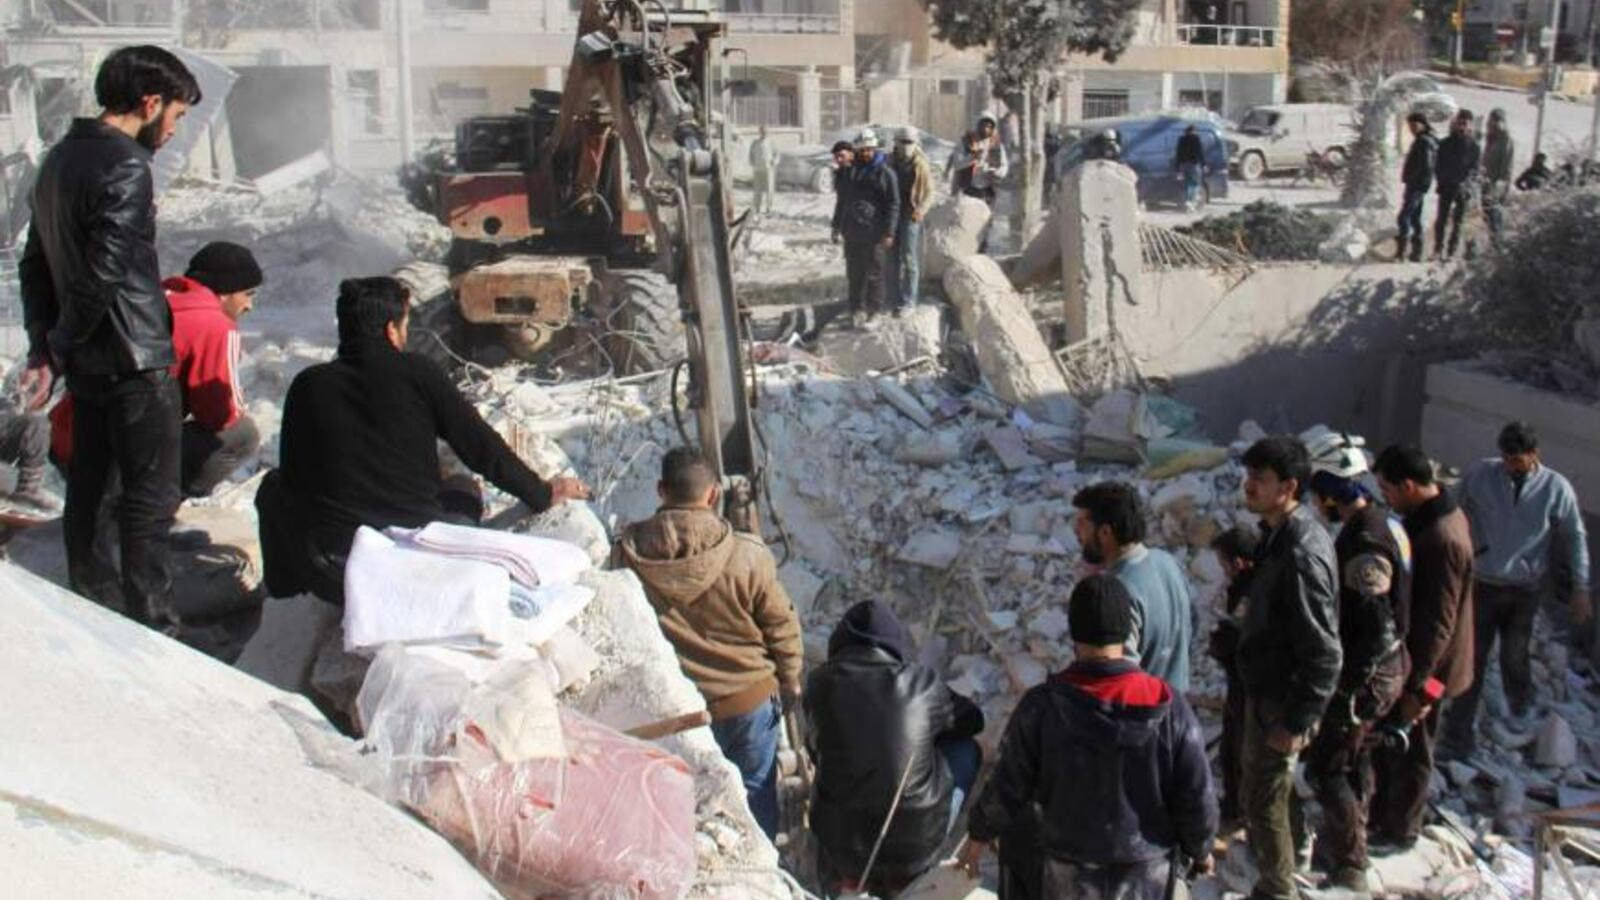 Syrian men and civil defense volunteers search for survivors amid the rubble of a building following airstrike on the northwestern city of Idlib. (AFP)